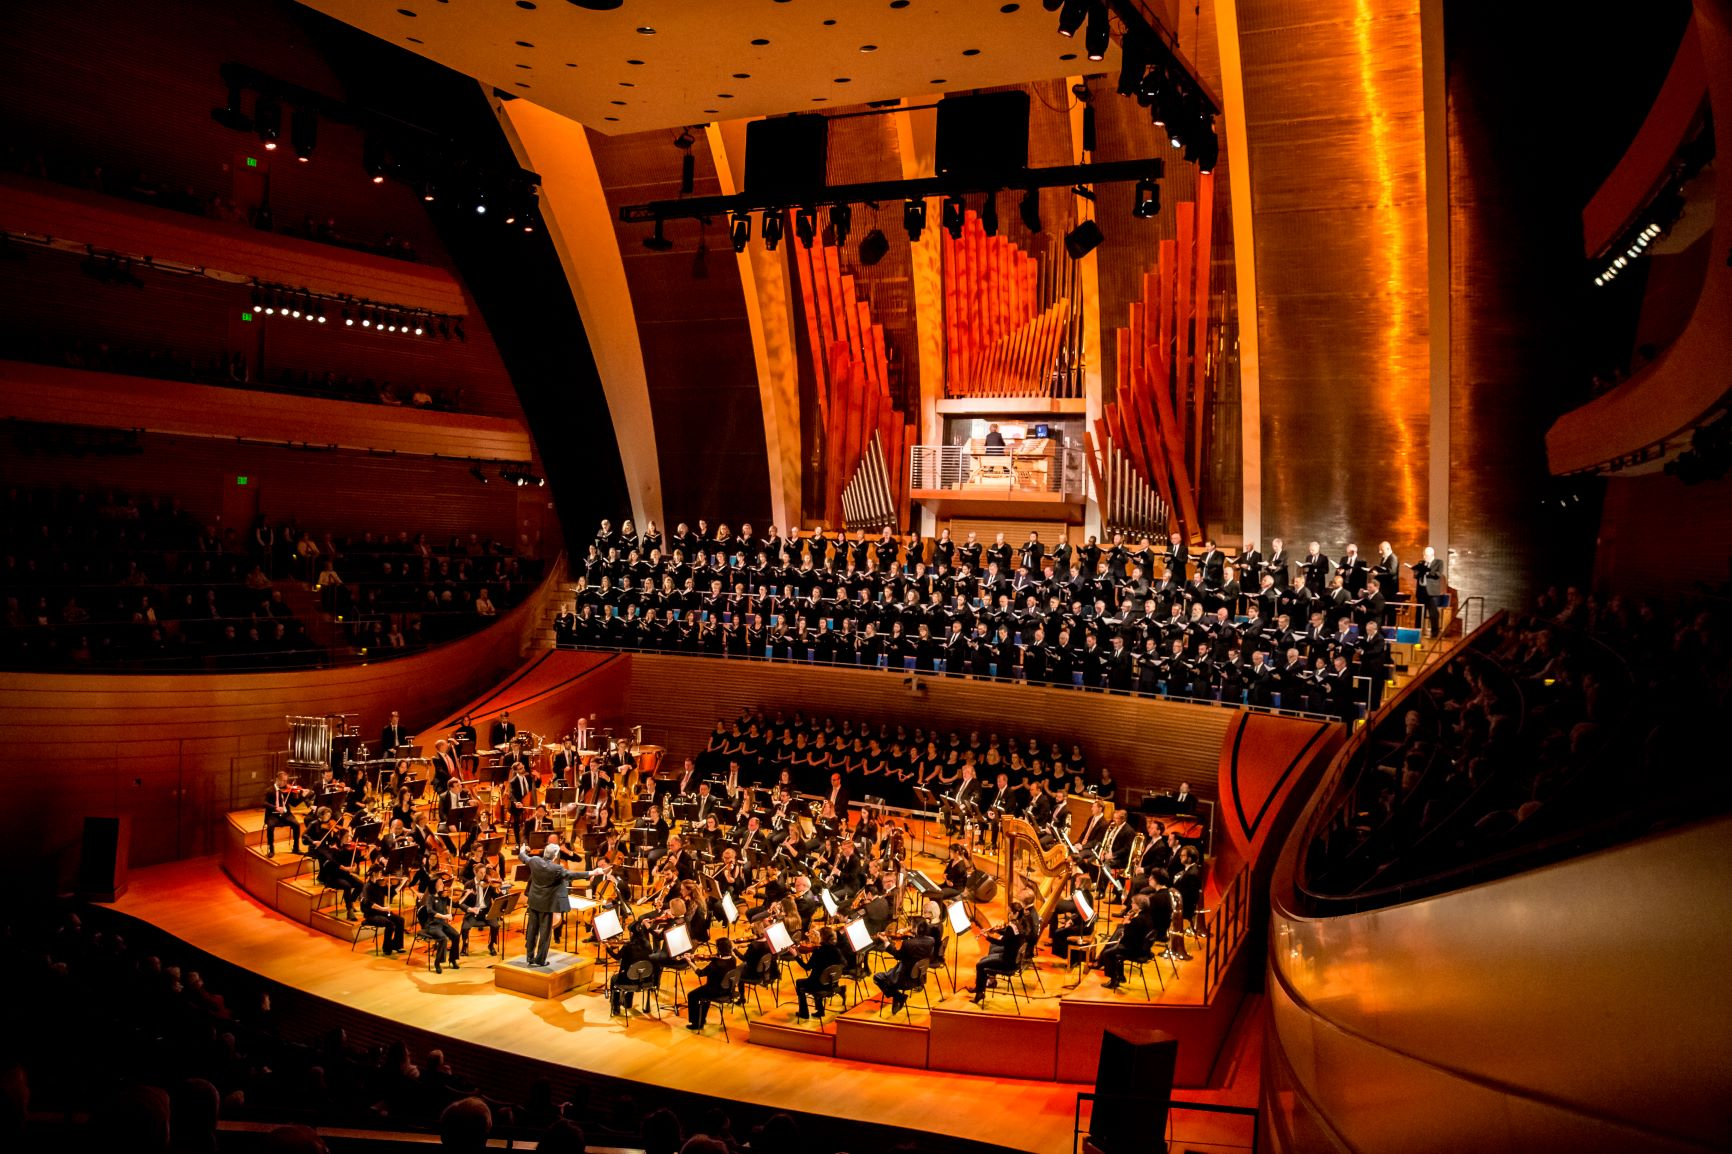 Orchestra in Helzberg Hall at the Kauffman Center for the Performing Arts